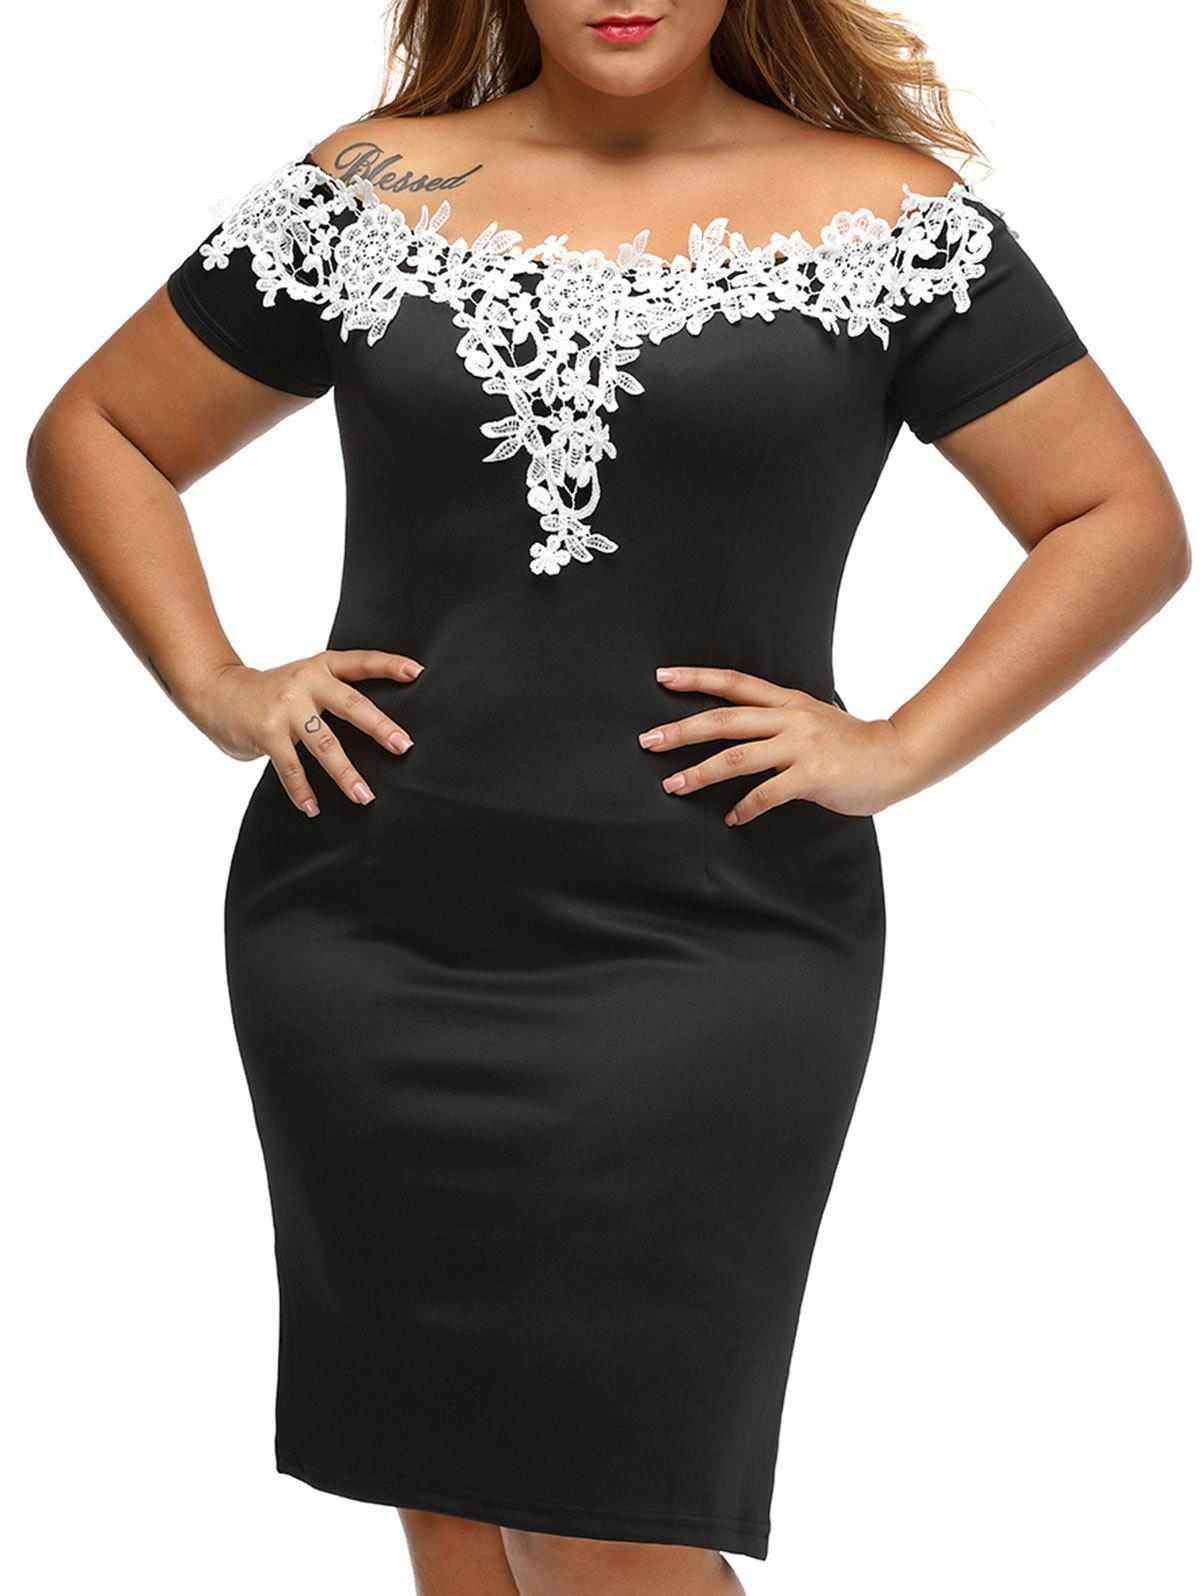 Floral Lace Insert Plus Size Off Shoulder Bodycon Dress - BLACK 1X